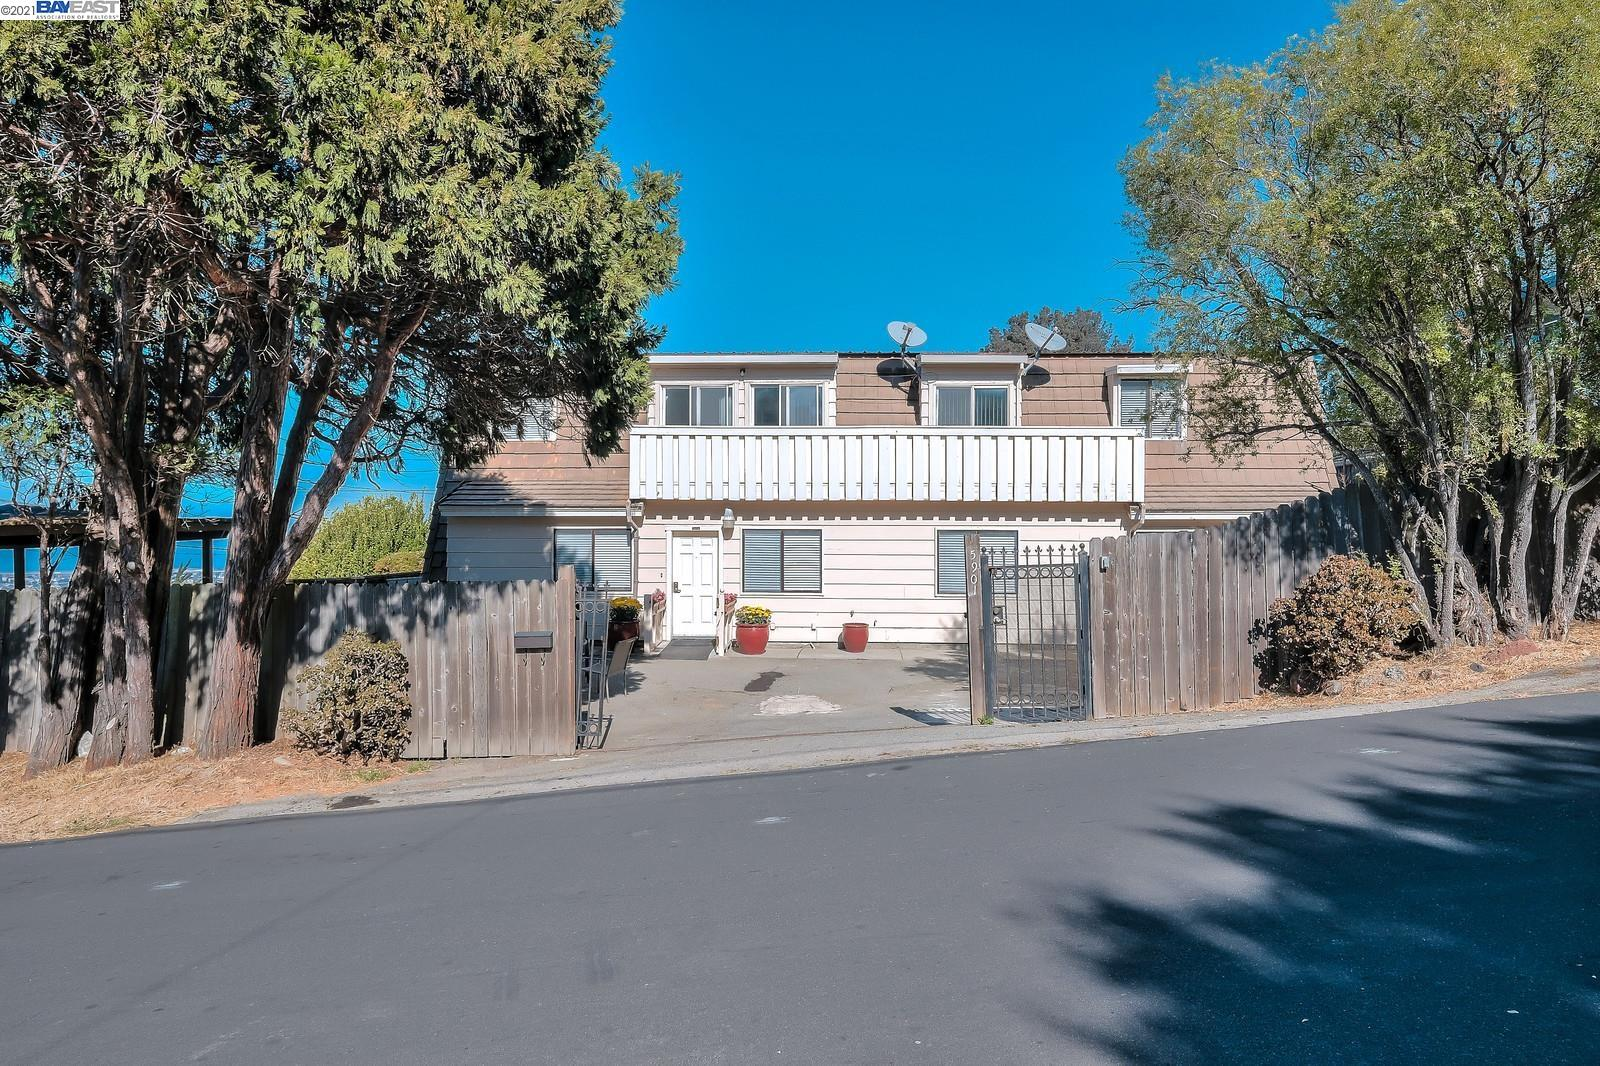 This wonderful move in condition property is listed at $350,000 below fair market value. Appraisal value $1,350,000. 9 bedrooms & 4 full baths single family with breathtaking panoramic bay views. Don't miss this newest and largest property in the neighborhood with a huge outdoor deck overlooking the bayviews. Huge potential for owner occupied dream homes, as well as for investor looking for opportunities on Airbnb or opening a 12 beds RCFE care home for seniors.